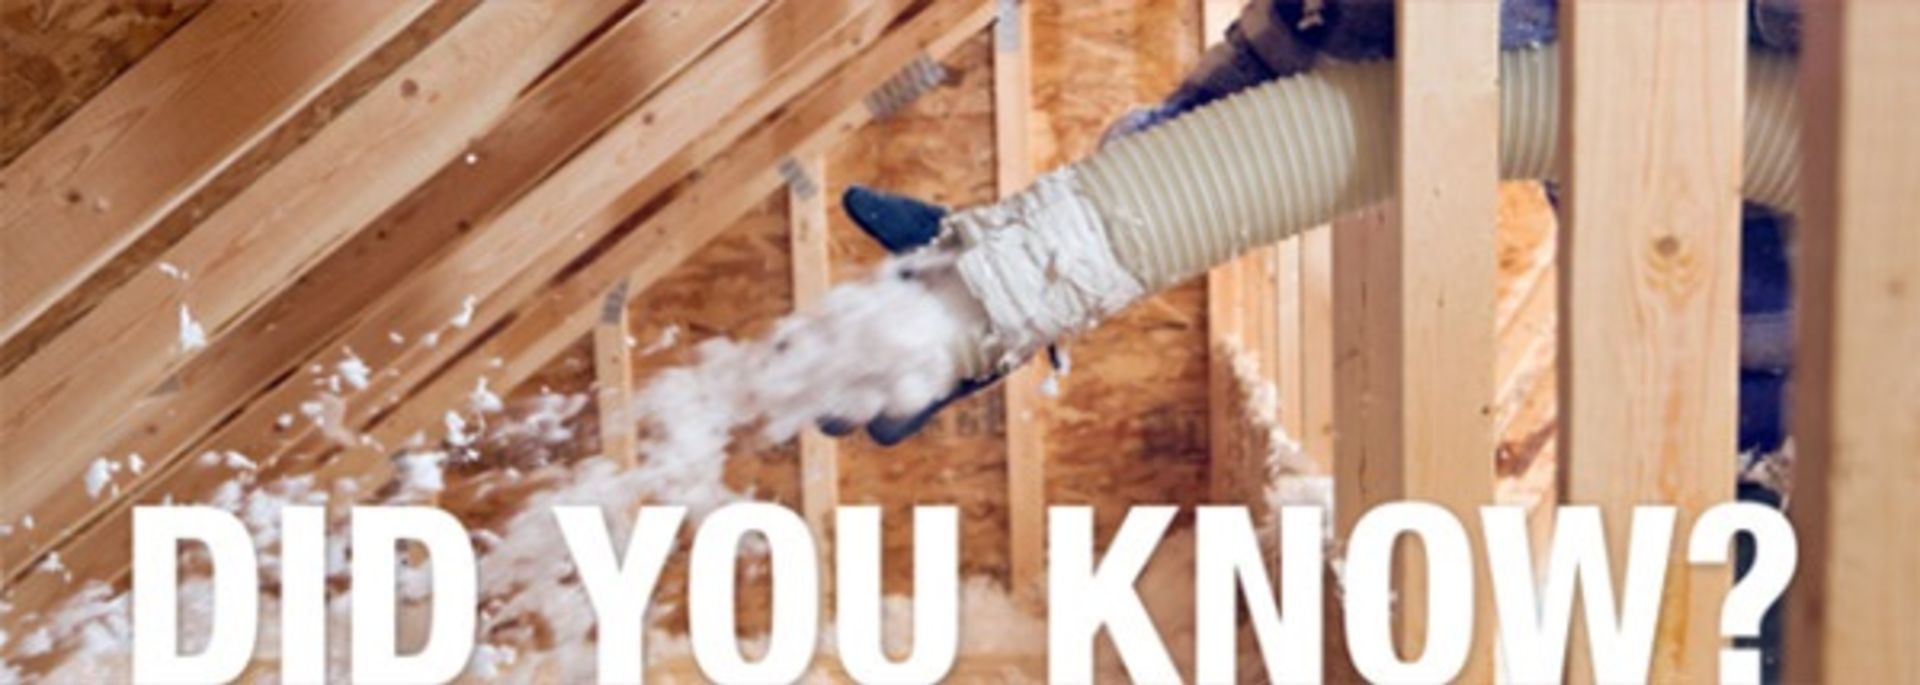 Did You Know? Insulation gaps aren't just in windows and doors.